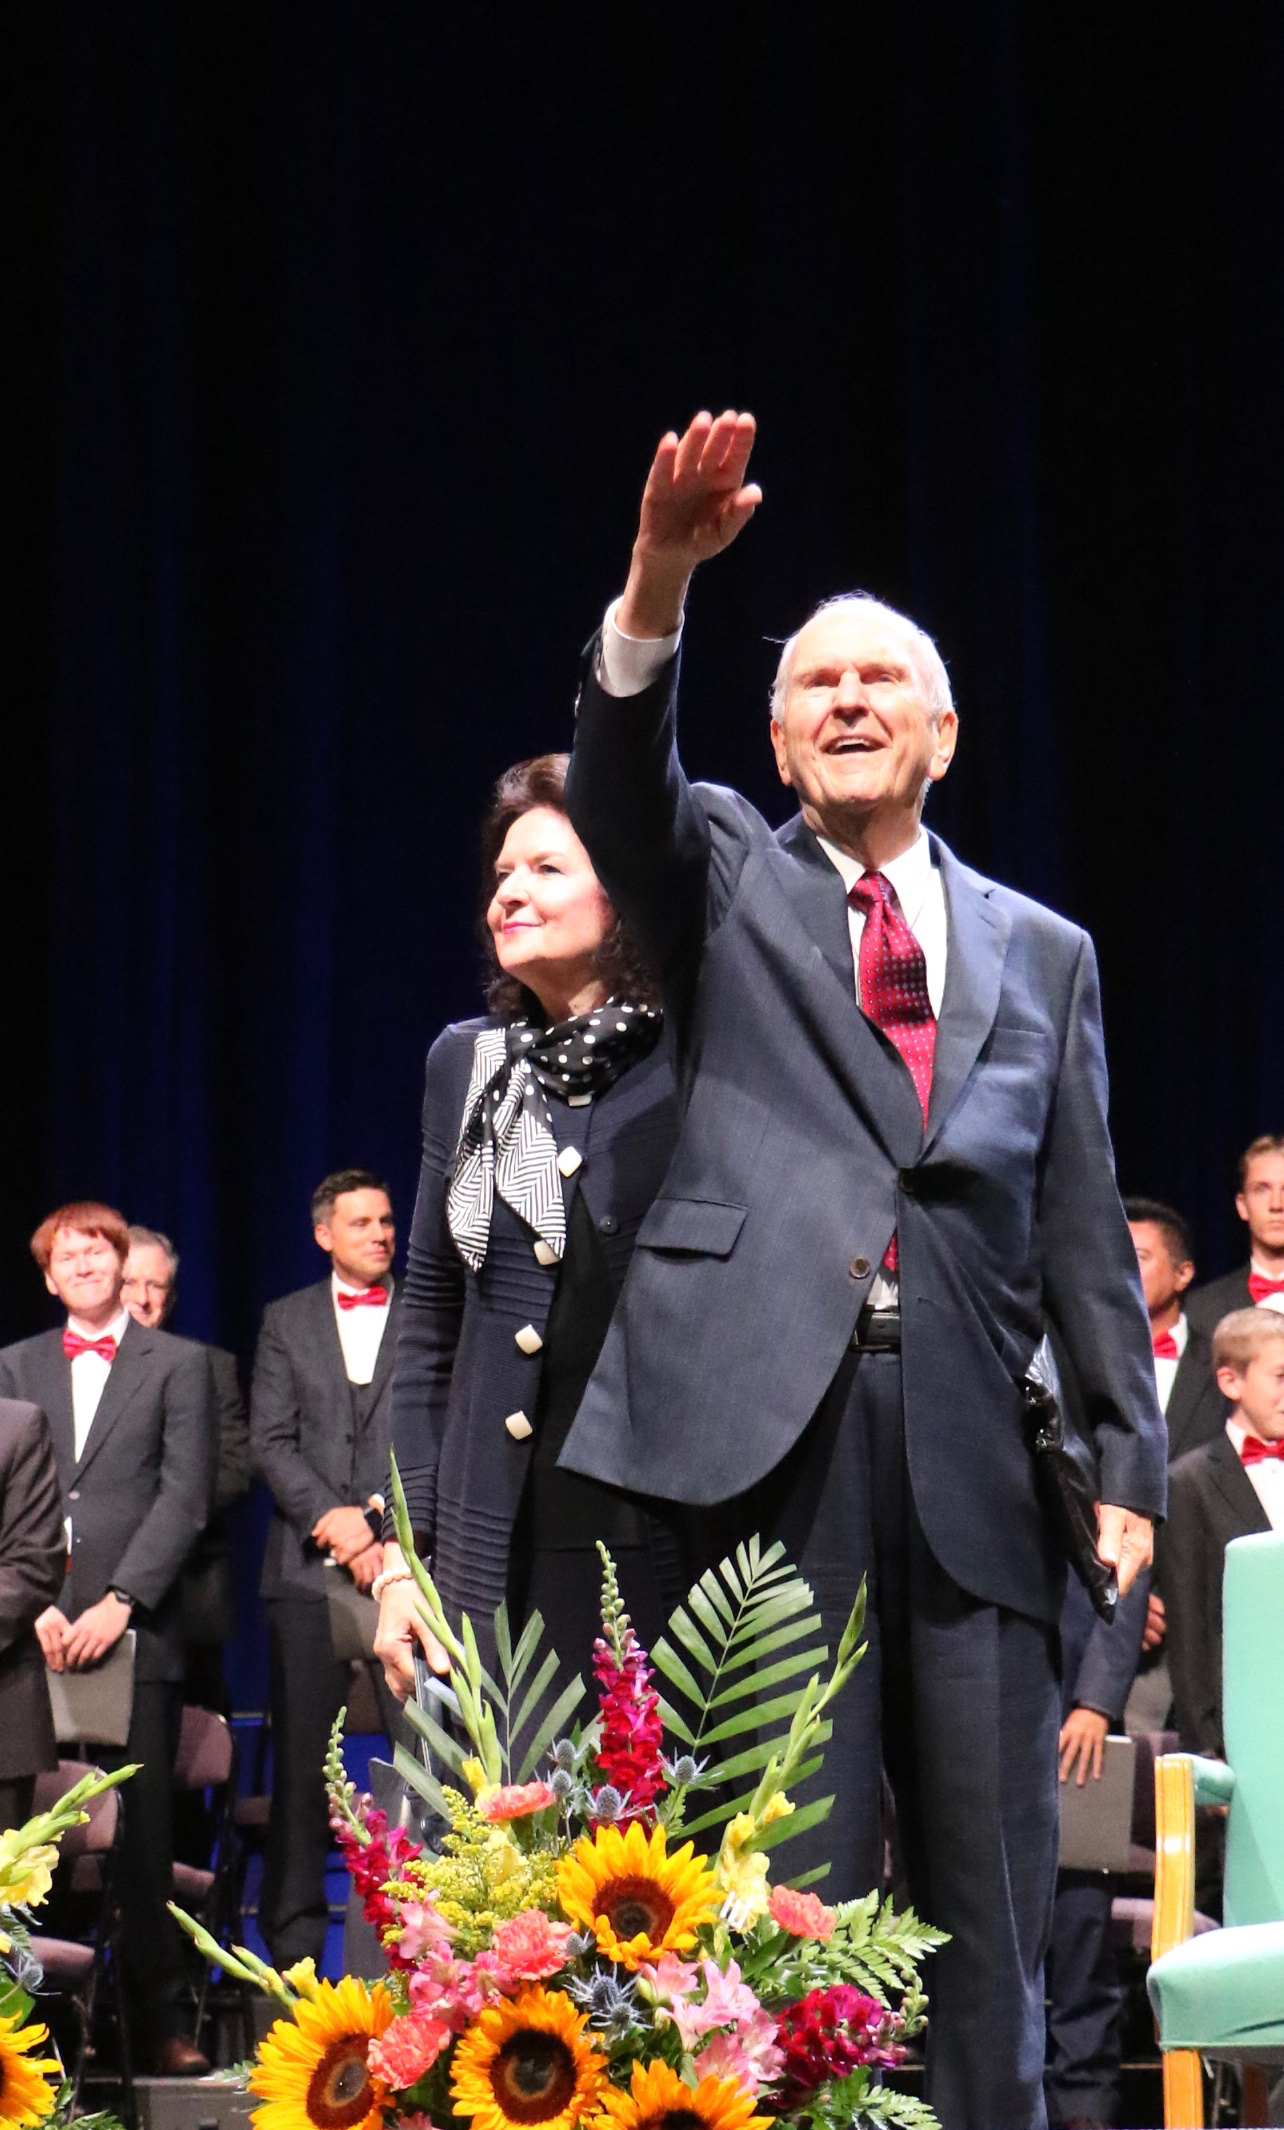 President Russell M. Nelson, joined by his wife, Sister Wendy Nelson, waves to the 8,000 members and visitors at the conclusion of the Sunday night, Aug. 19, 2018, devotional held at the FirstOntario Centre in Hamilton, Ontario.